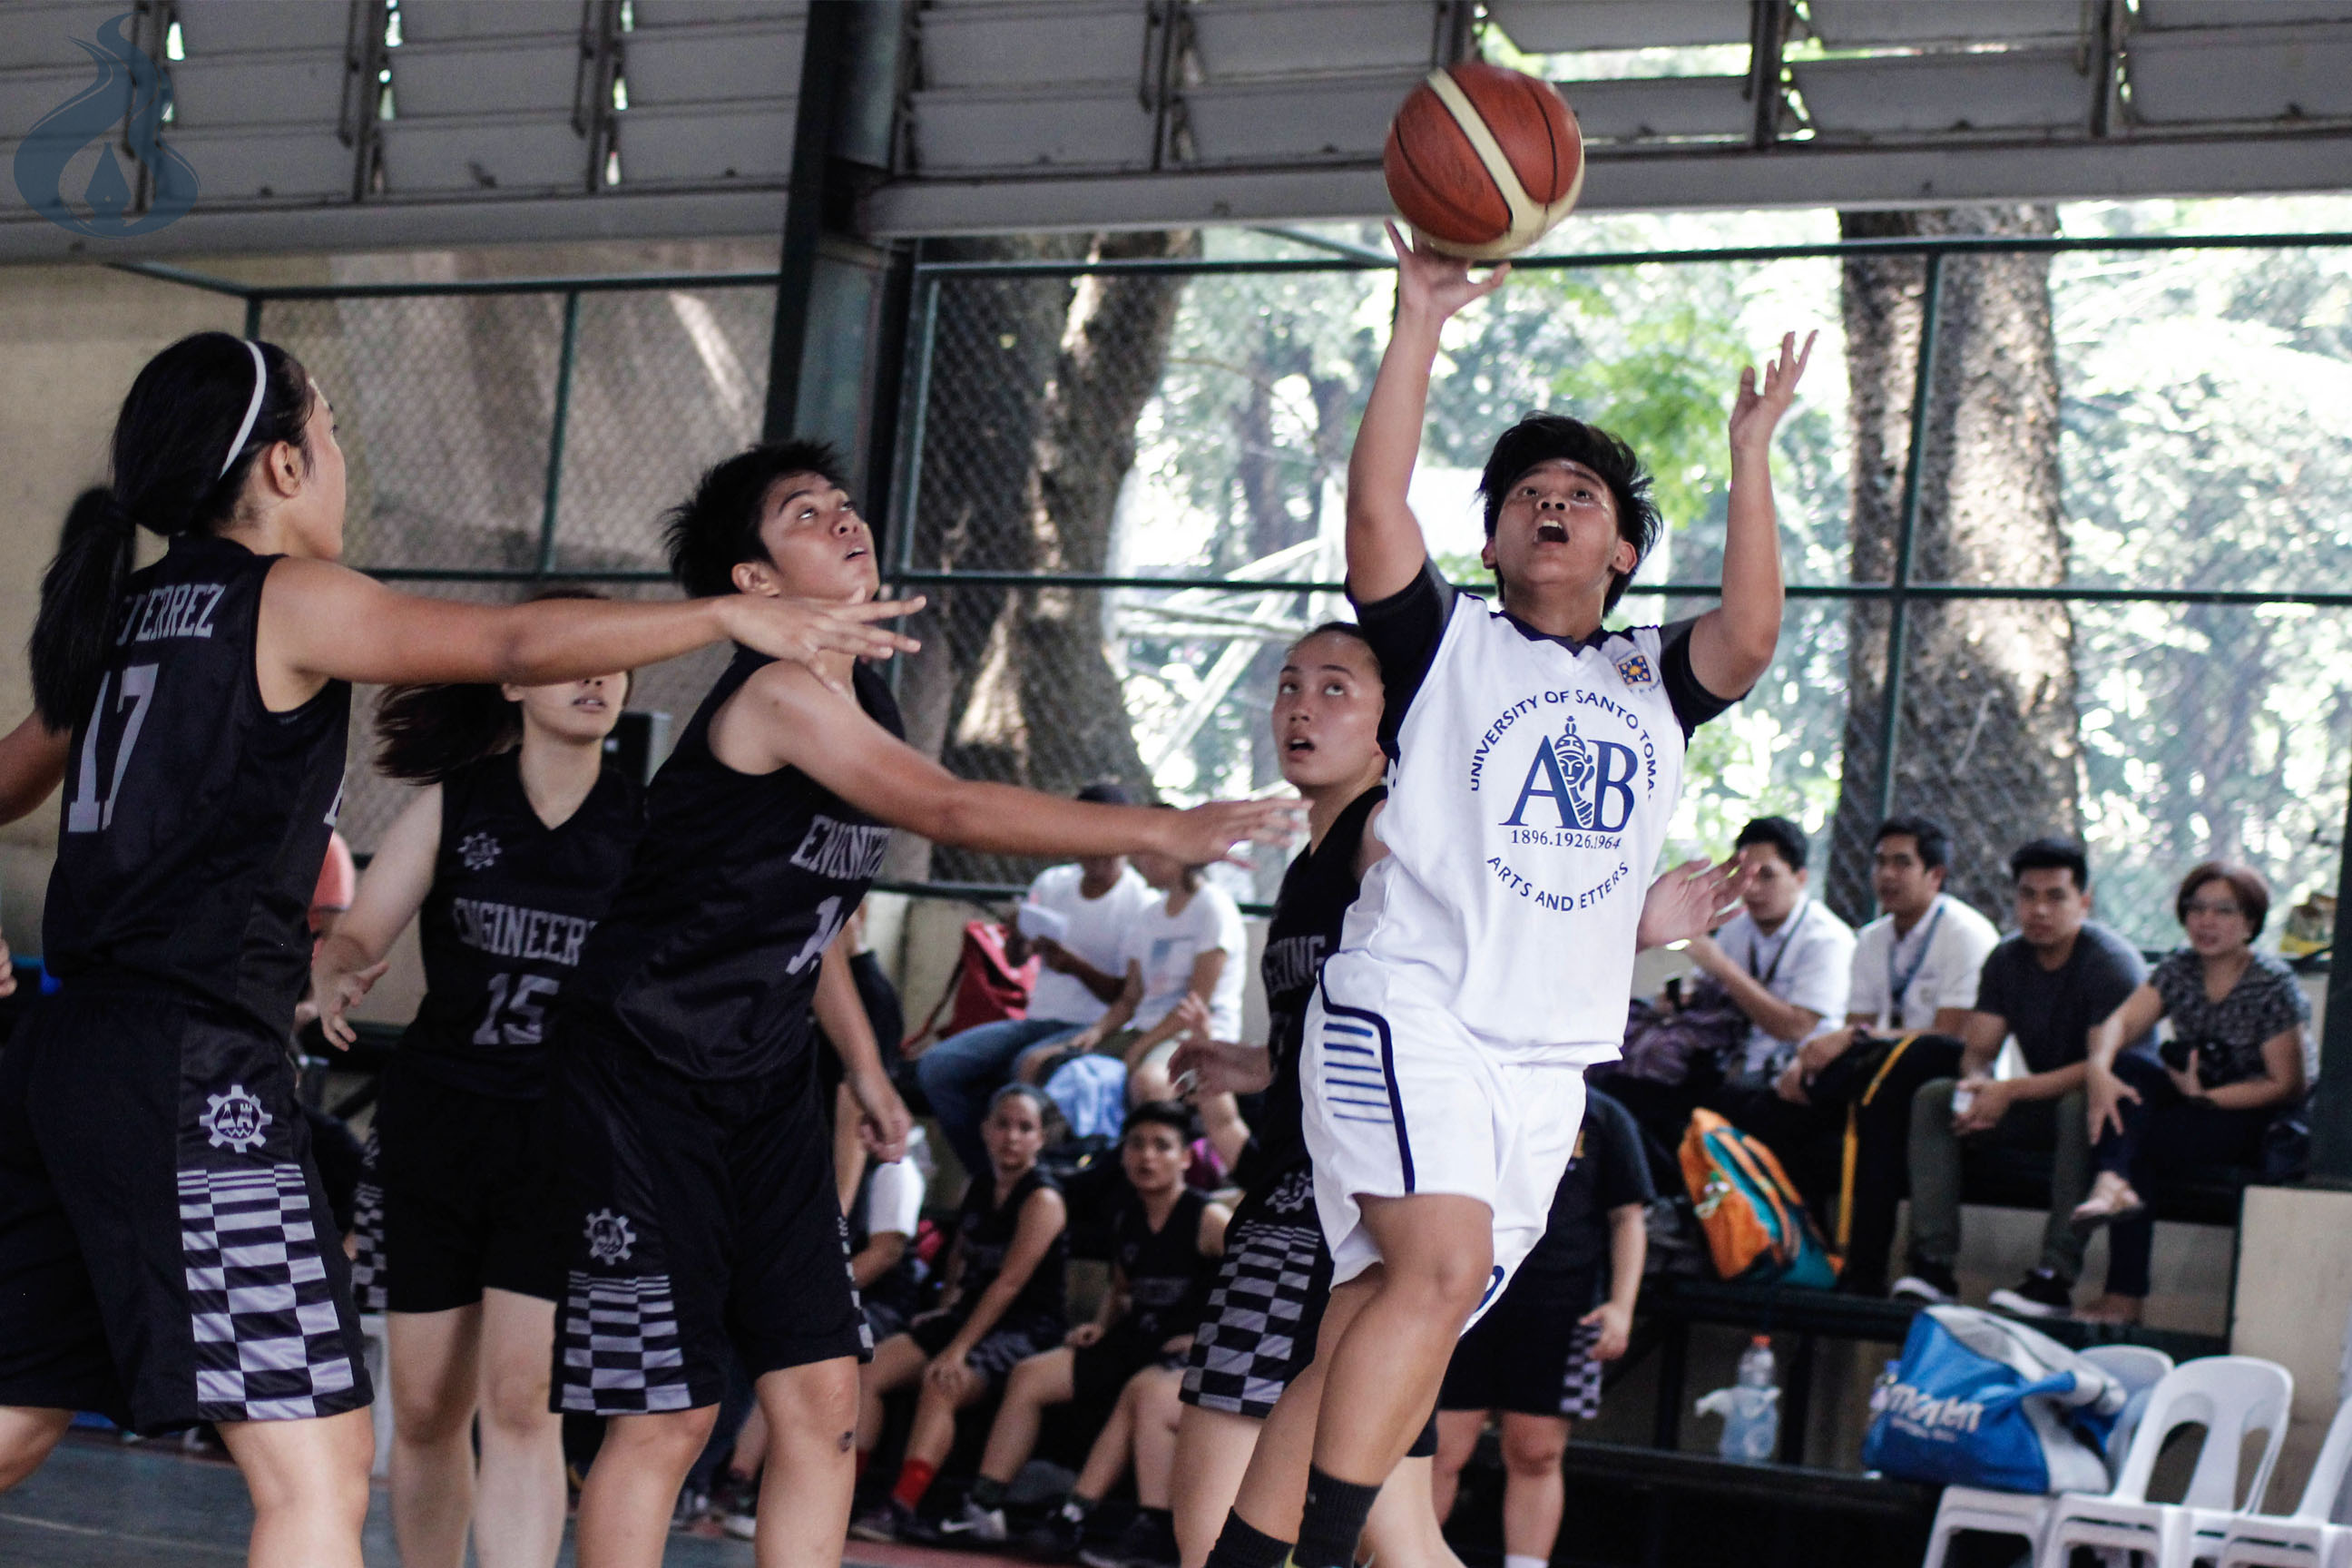 AB Women's unscathed, advances to Goodwill semis